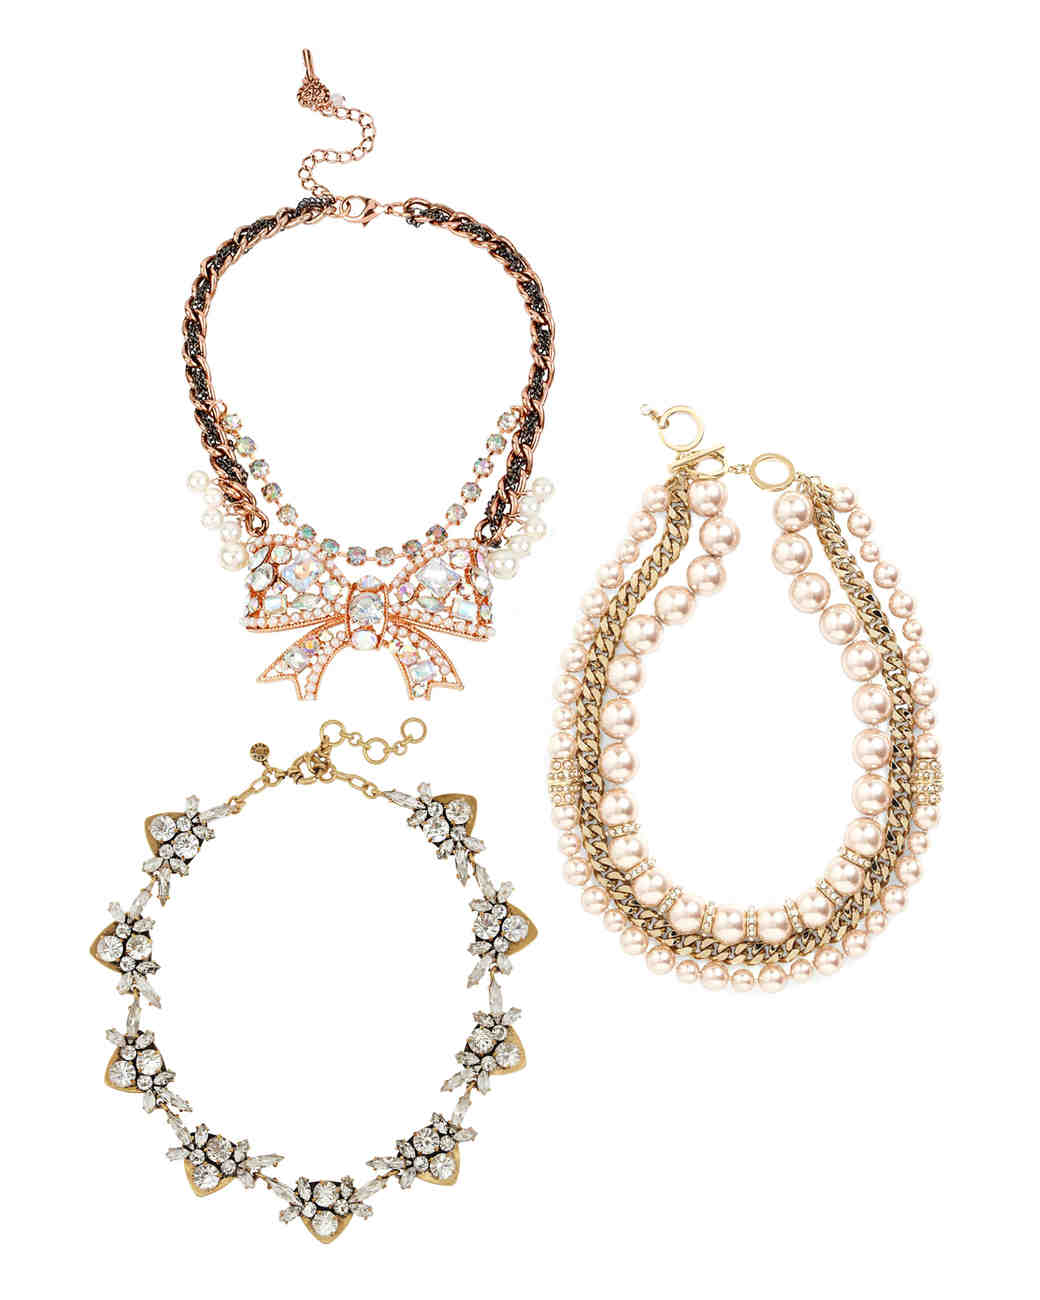 bridal-accessories-under-100-statement-necklaces-0714.jpg